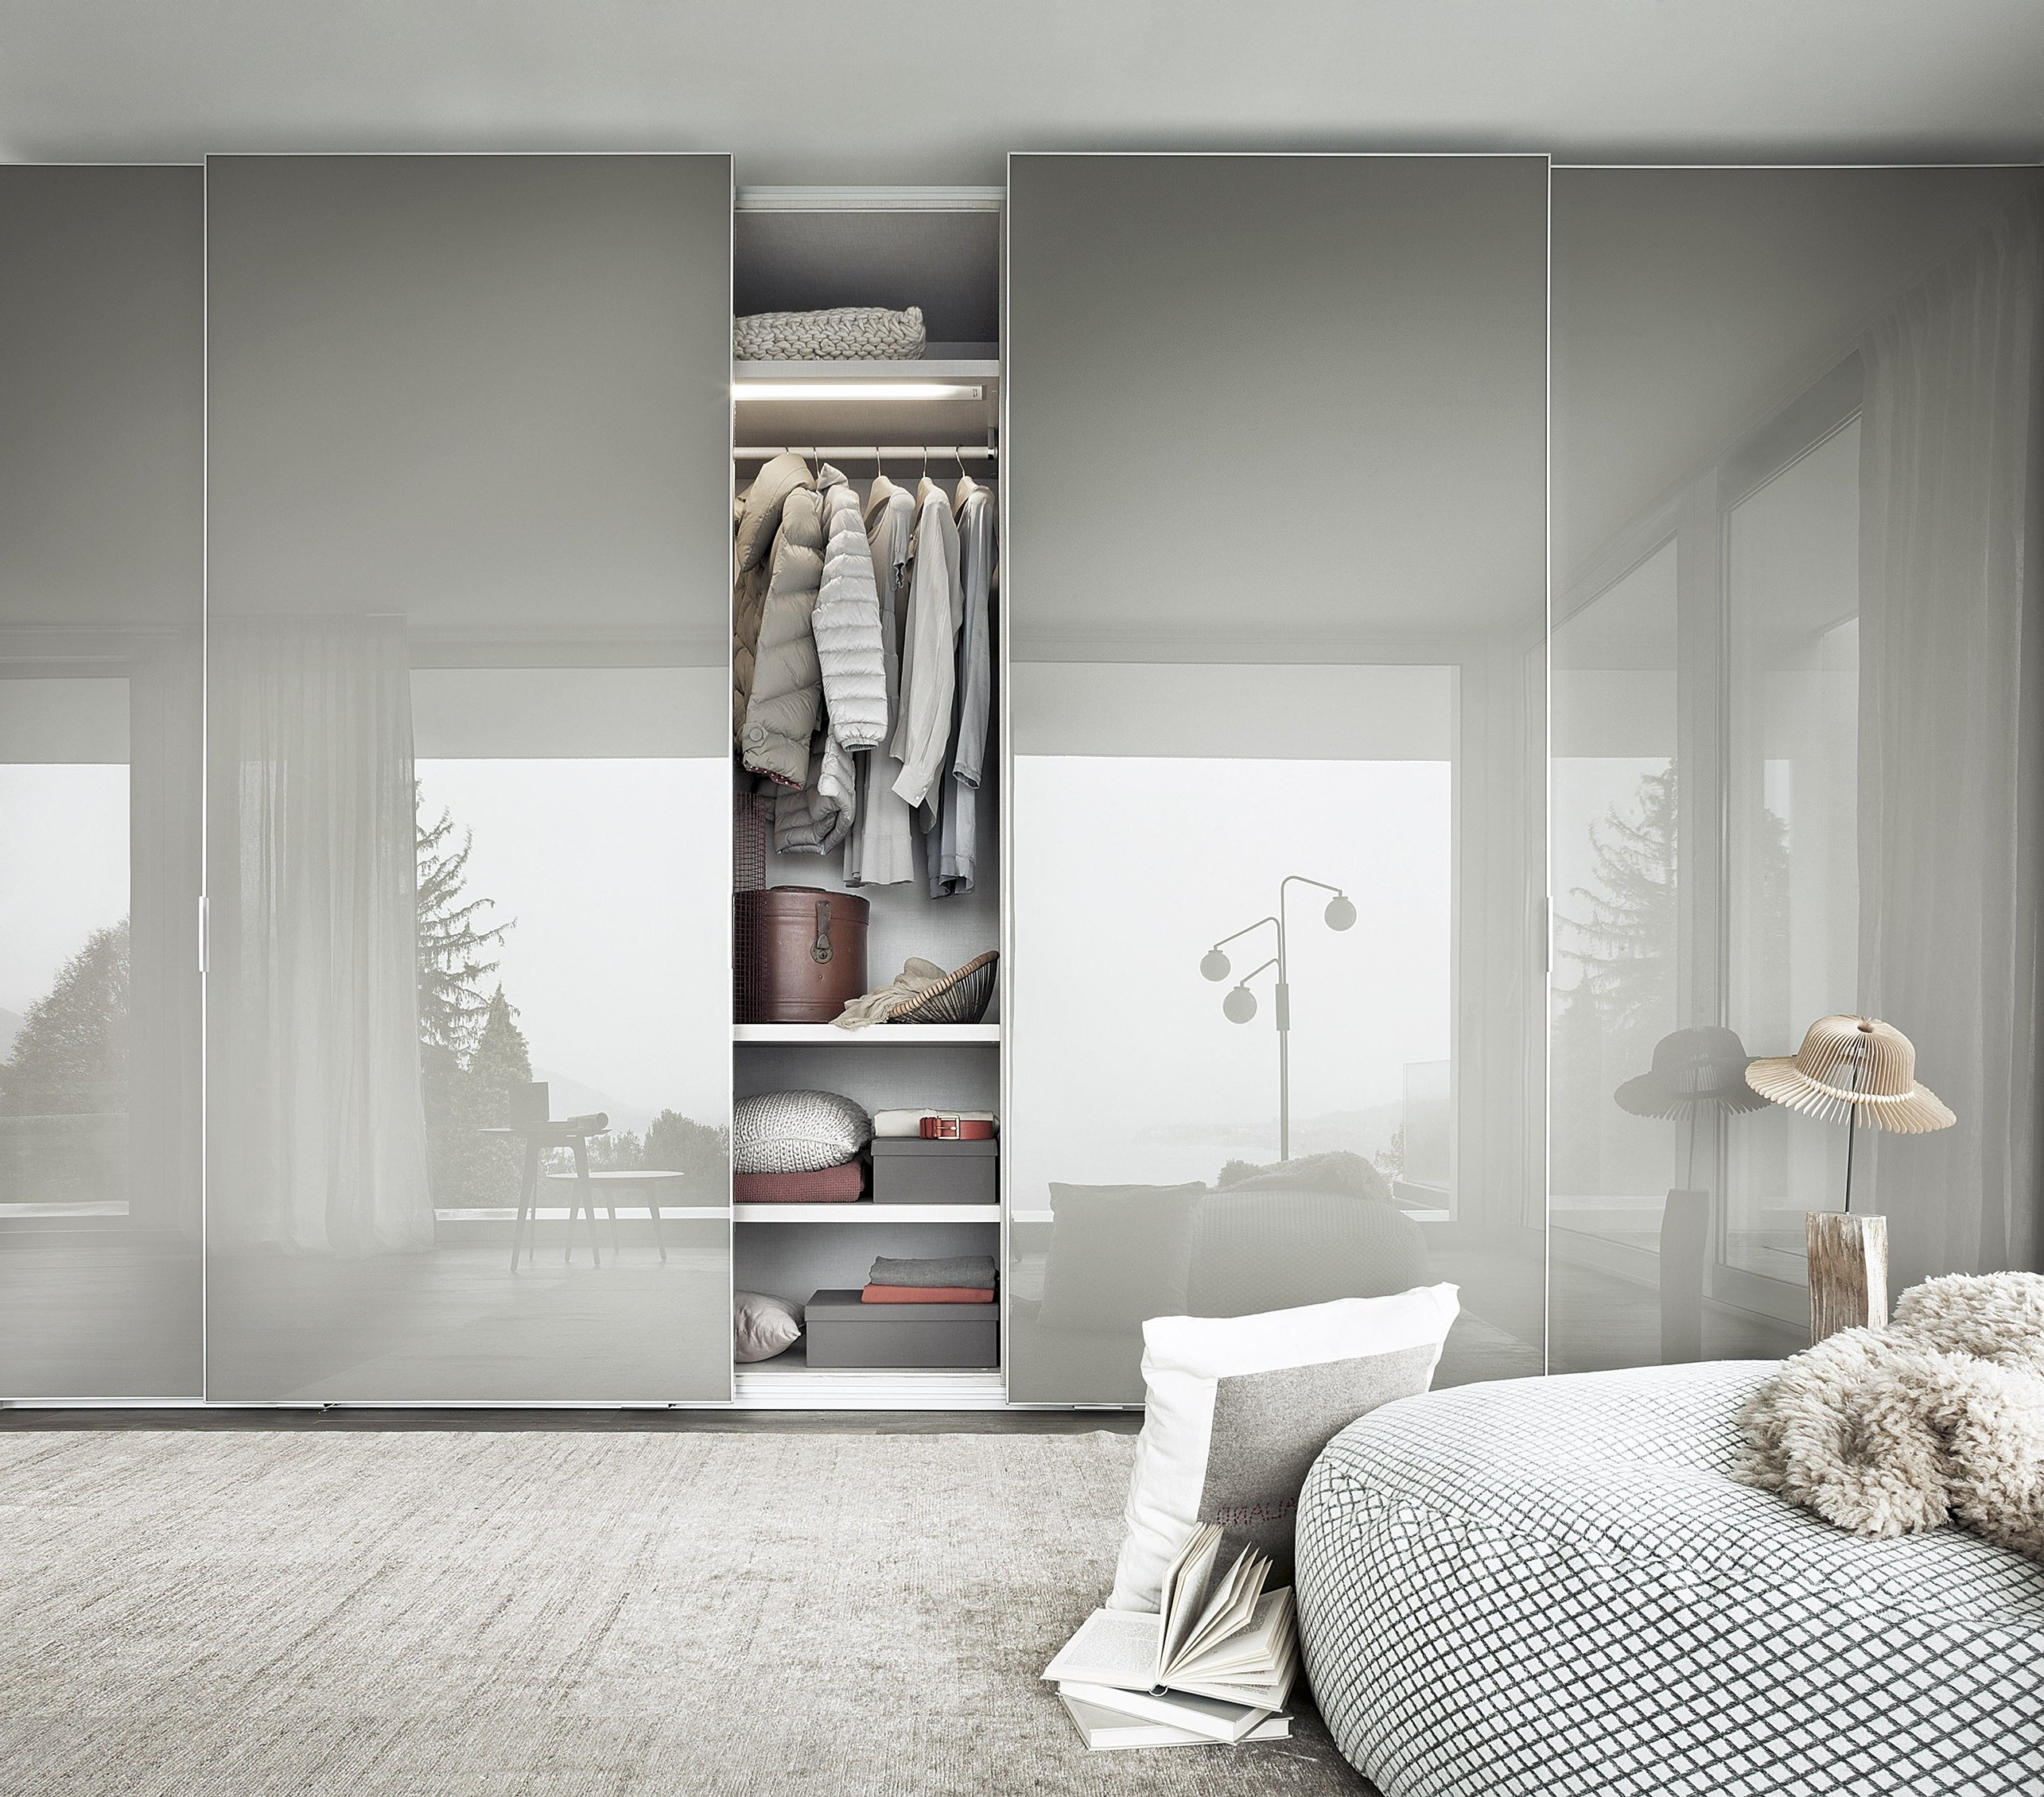 Most Recent Awesome White Gloss Wardrobes With Sliding Doors – Badotcom Within Black High Gloss Wardrobes (View 10 of 15)